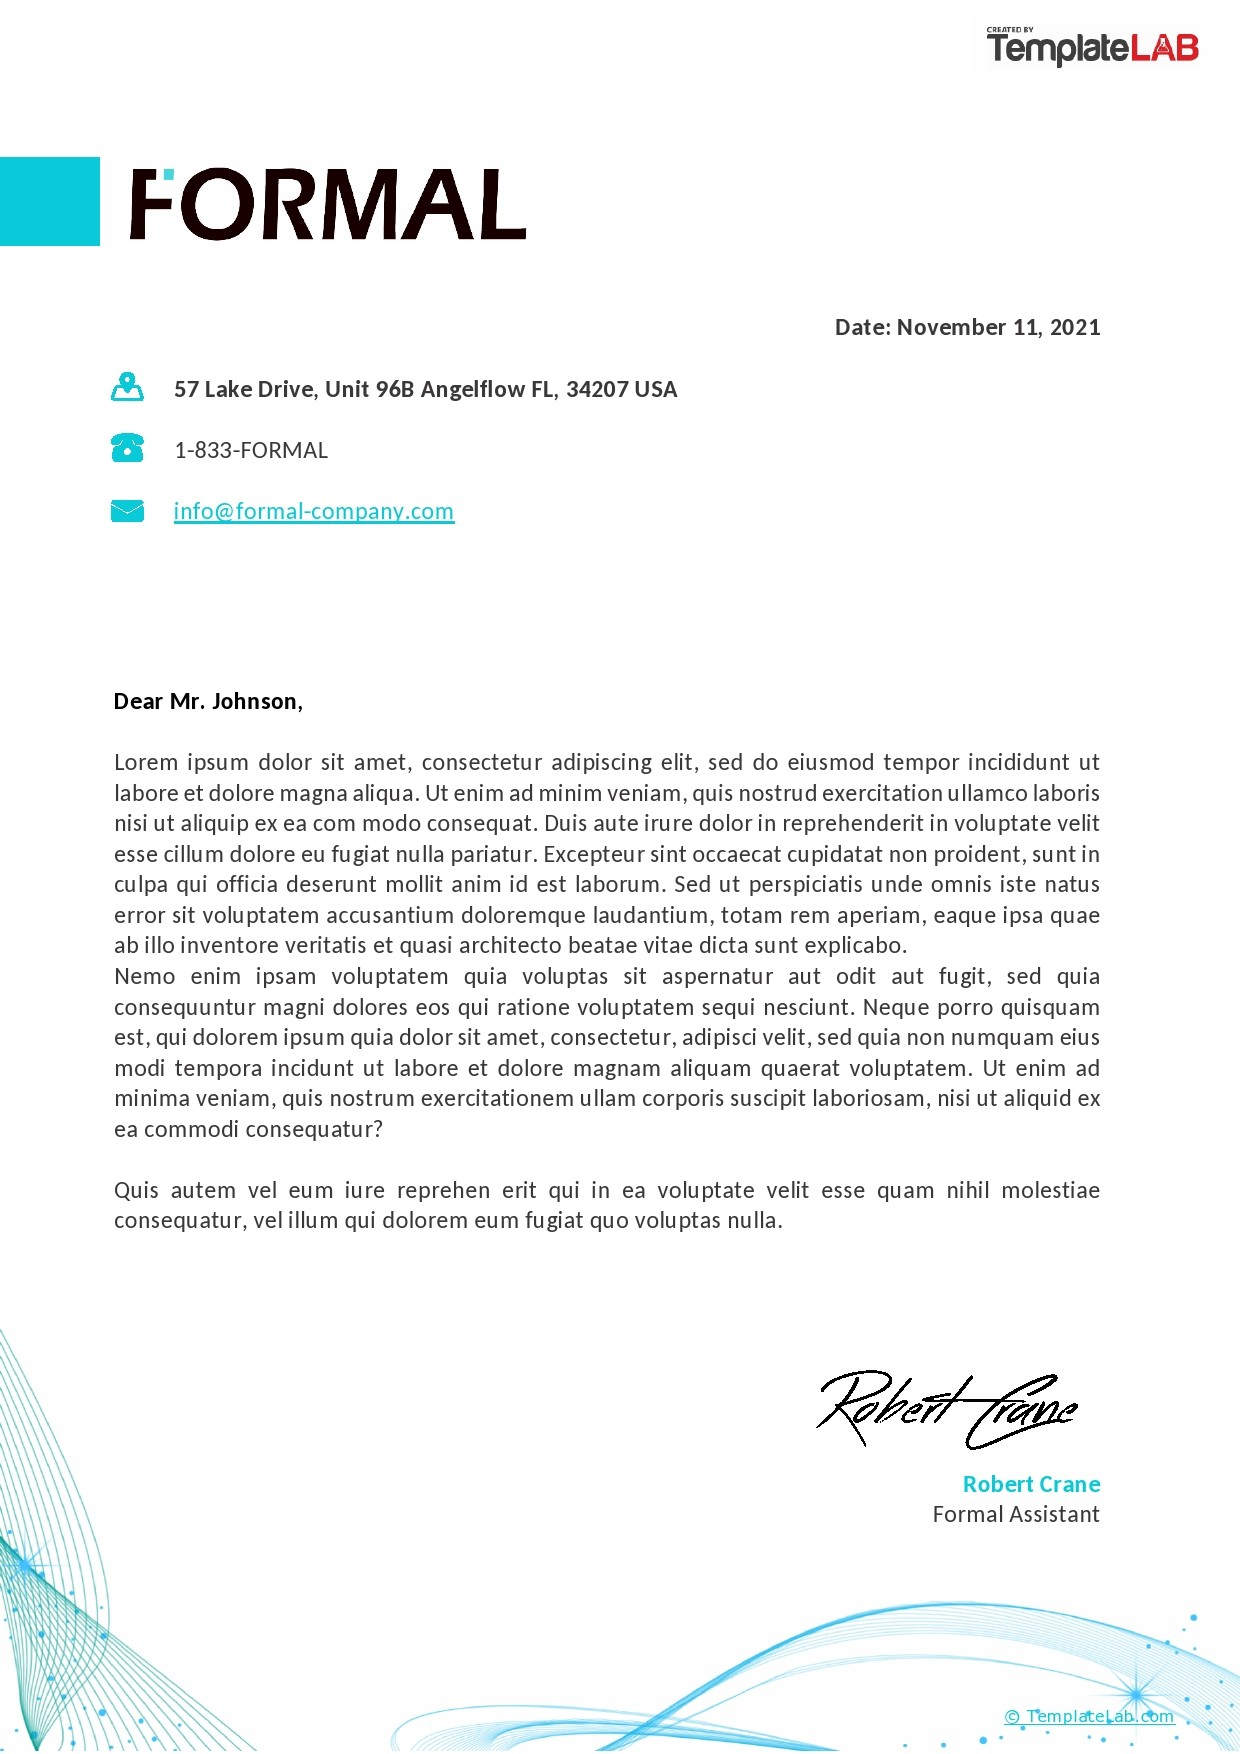 Free Formal Letterhead Template - TemplateLab.com